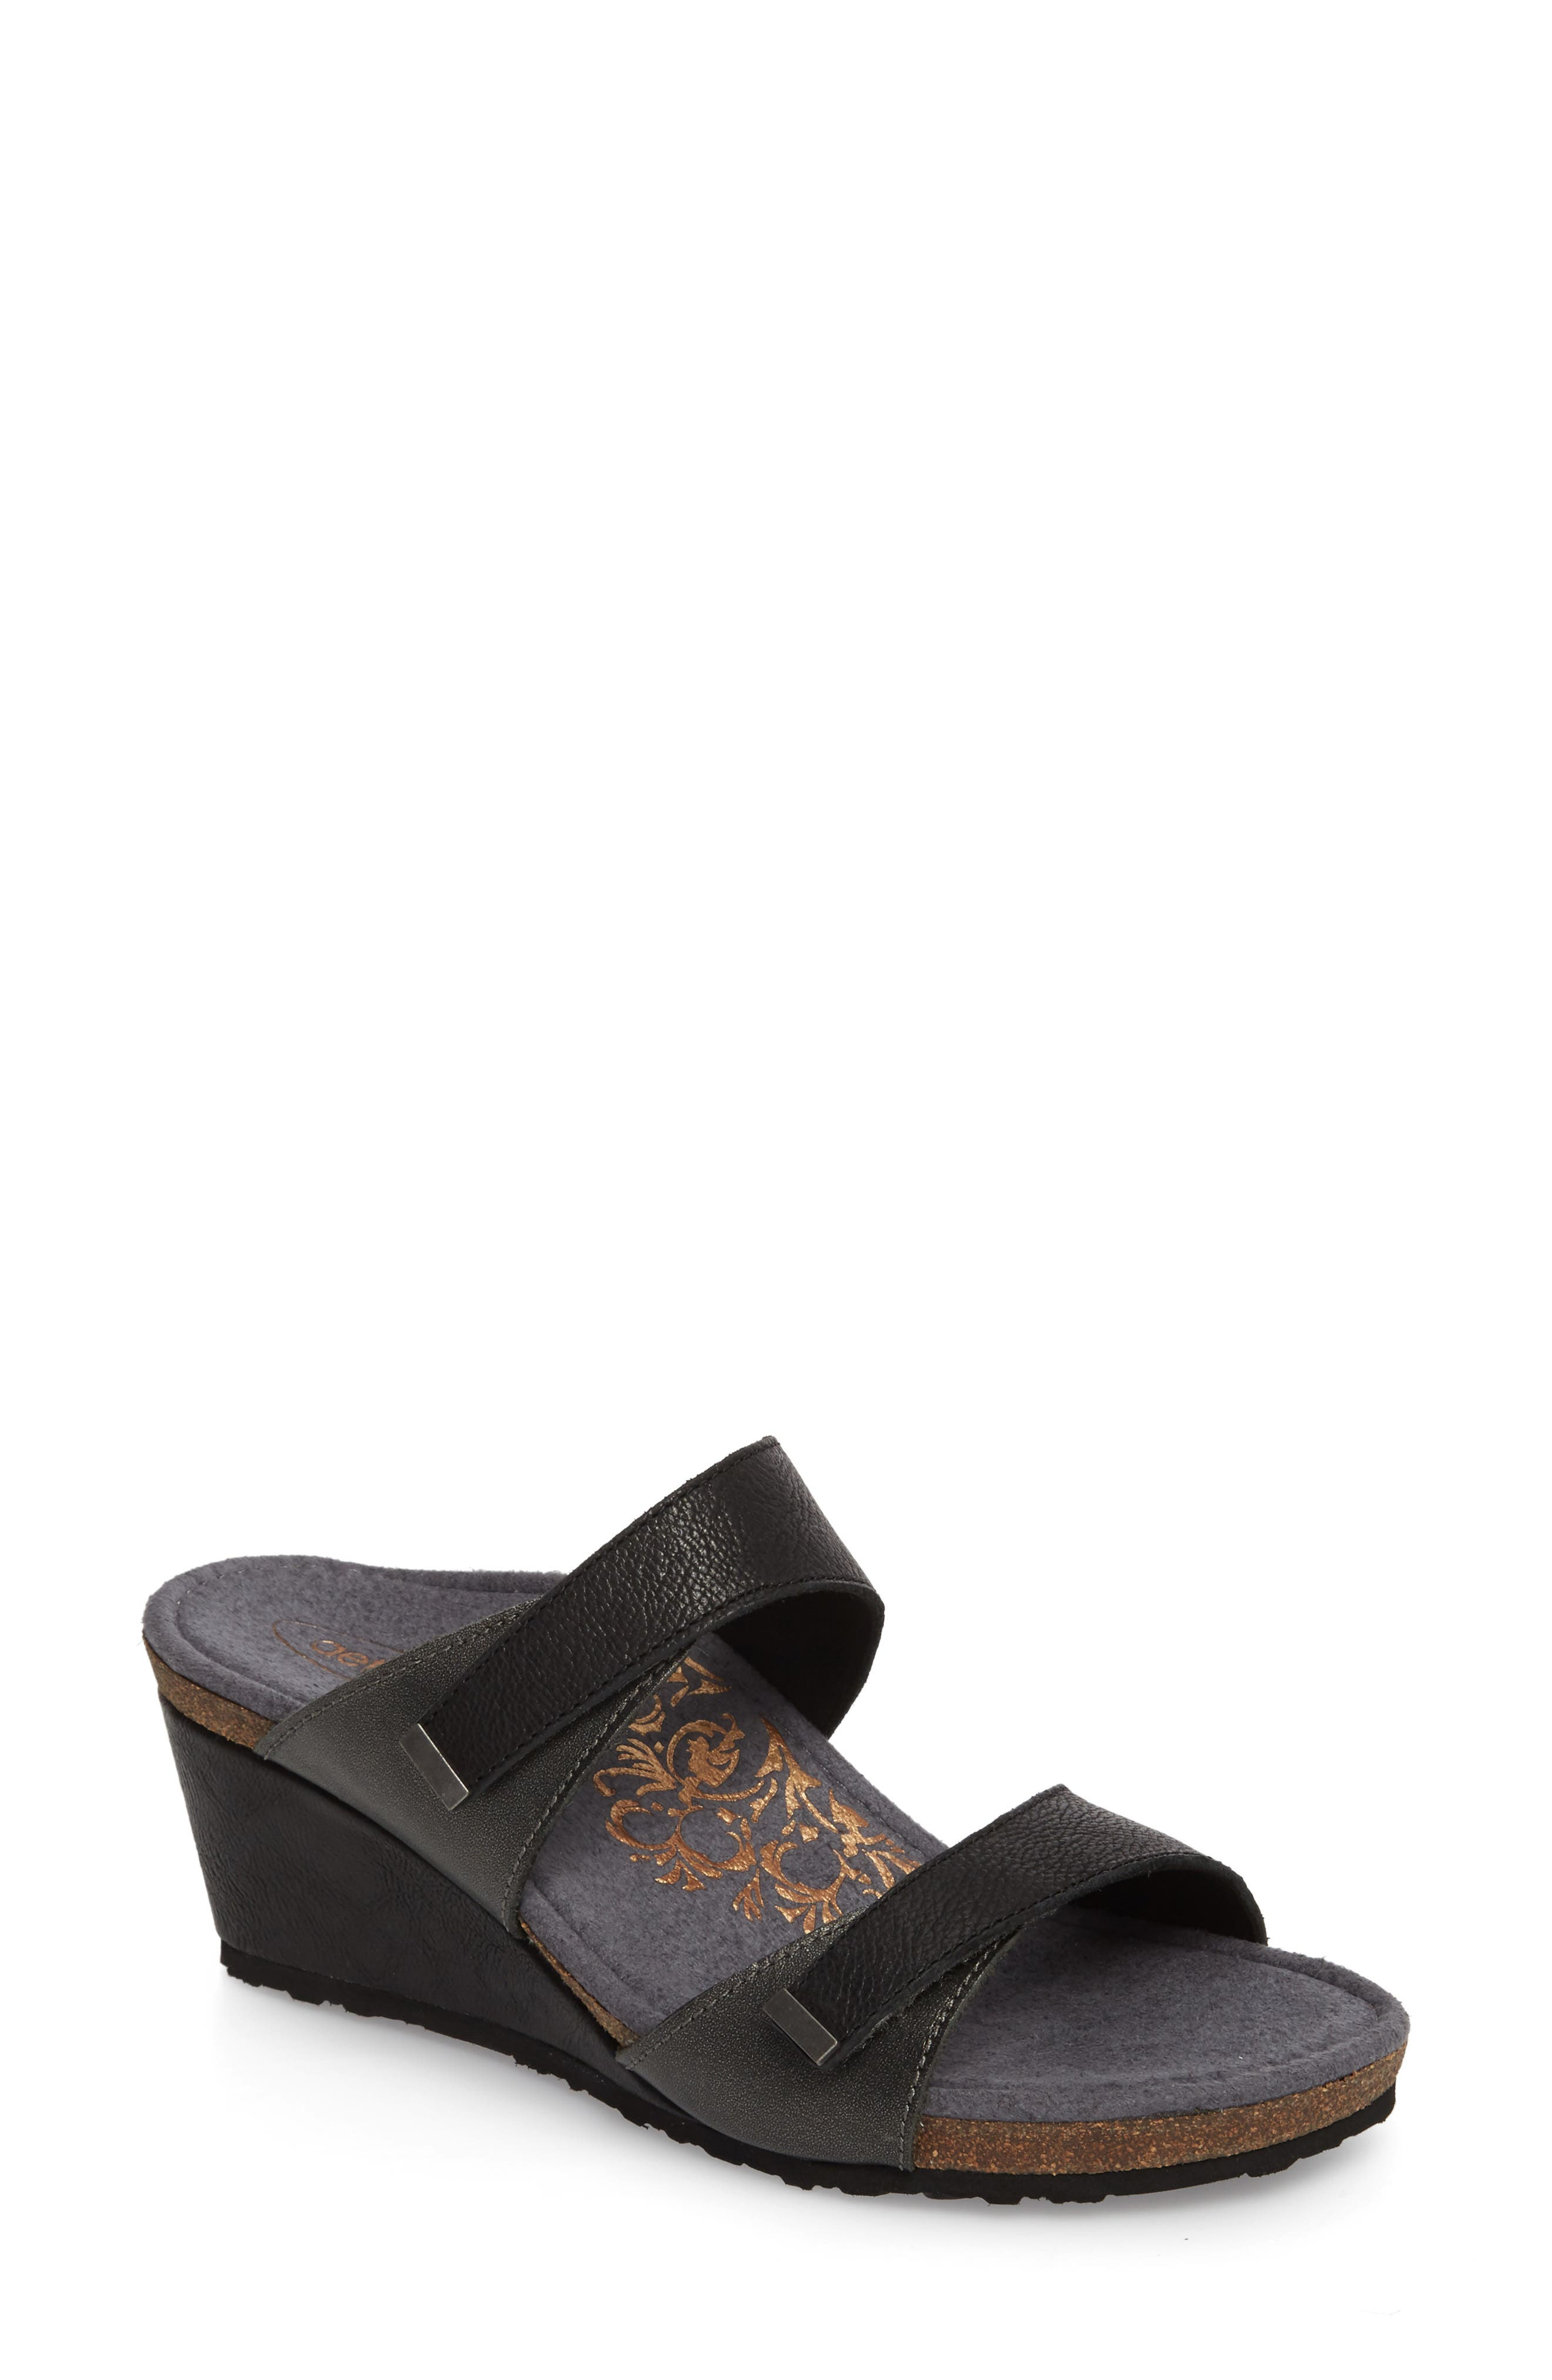 Chantel Wedge Sandal,                         Main,                         color, Black Leather